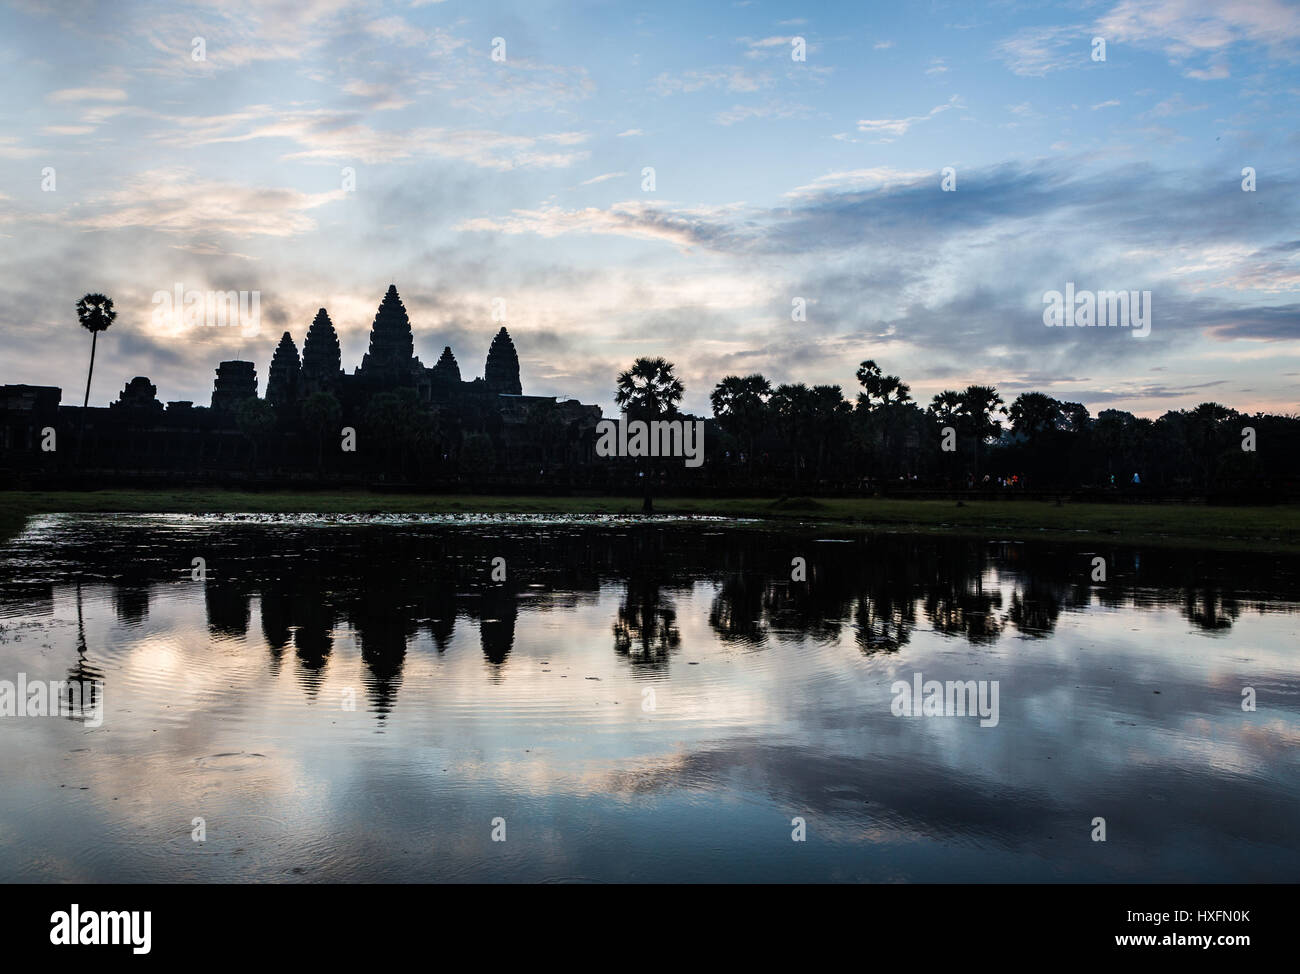 Stunning sunrise over Angkor Wat, as a silhouete, with the temple refleciting in water in Siem Reap, Cambodia. This - Stock Image